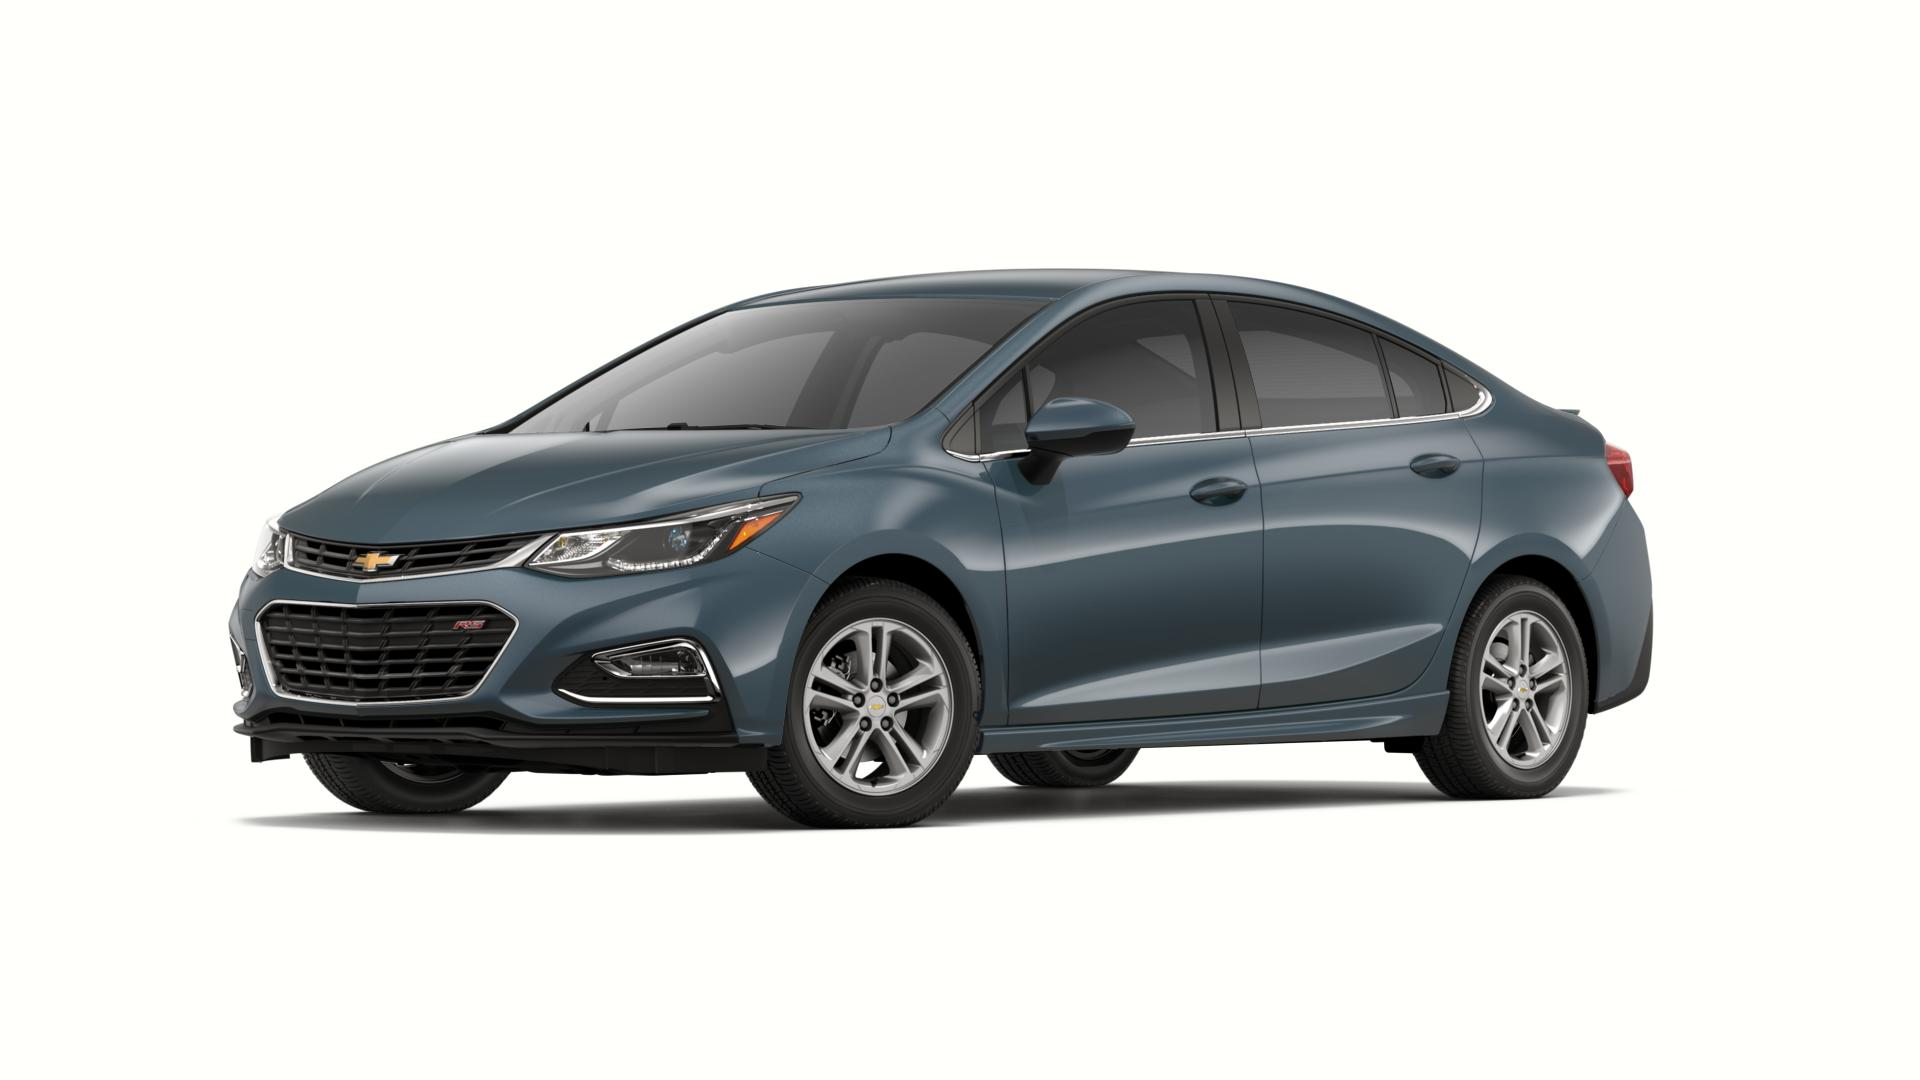 2018 chevy cruze specifications info commonwealth chevrolet. Black Bedroom Furniture Sets. Home Design Ideas